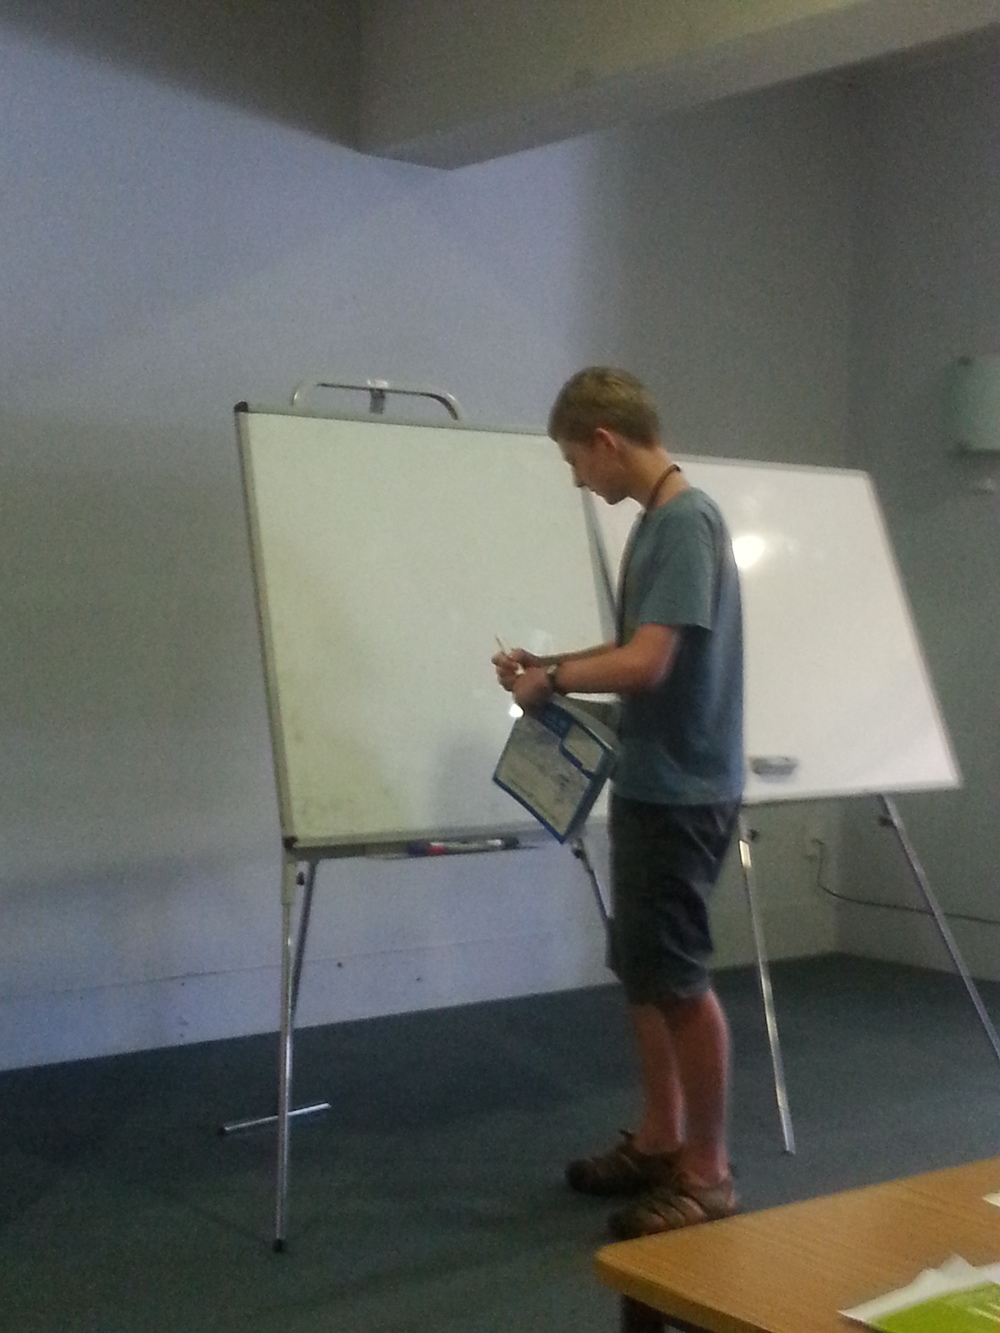 Keiran Lewellen preparing for the explanation of Question 4